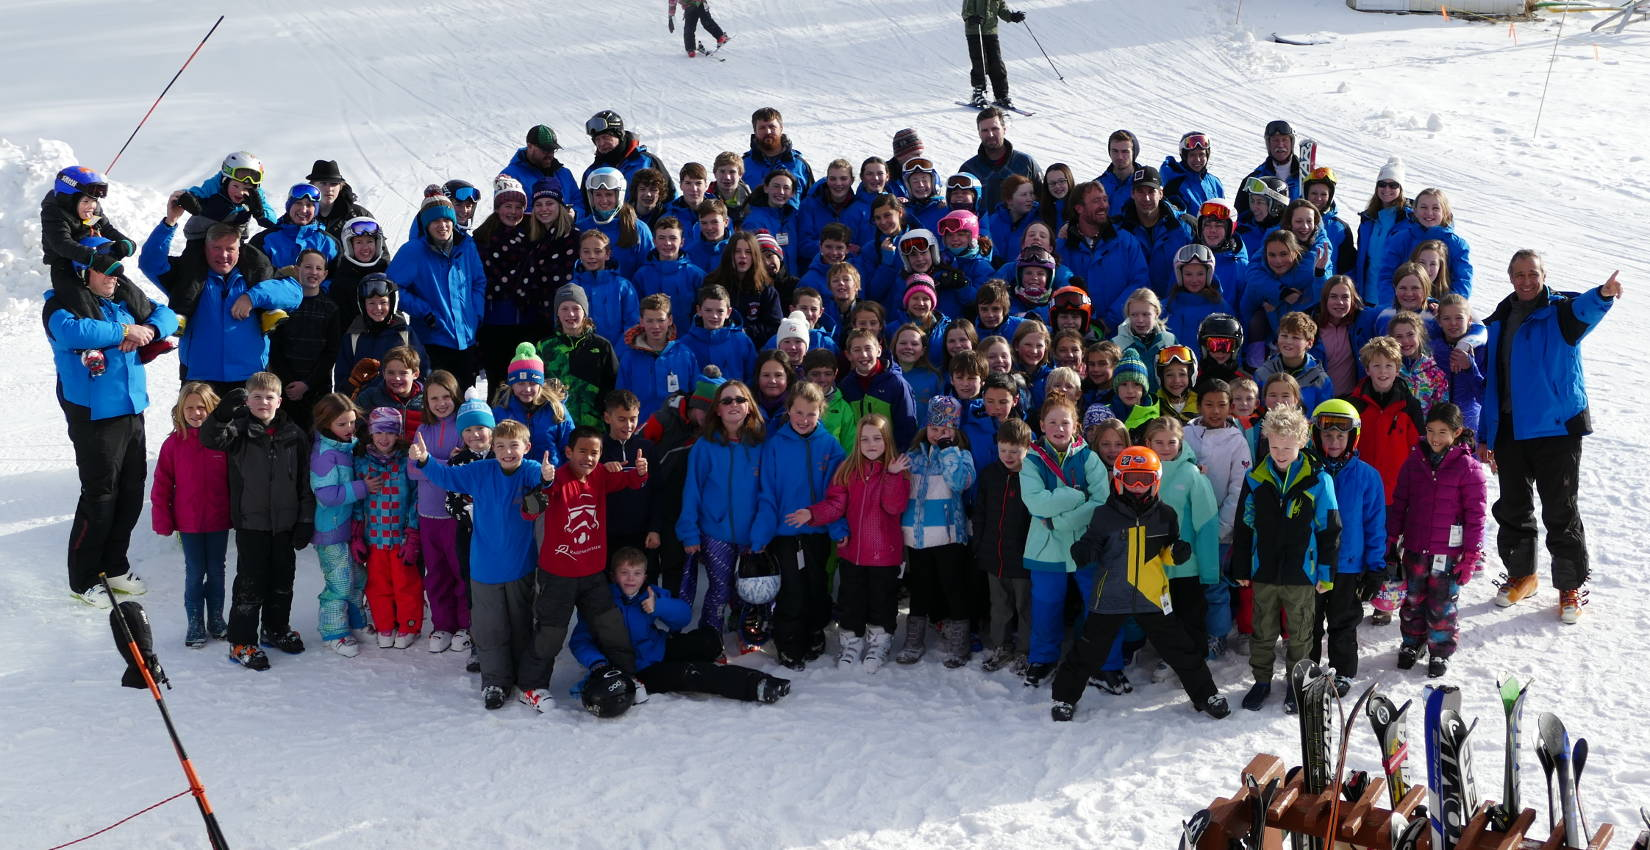 2016 / 2017 Ragged Mountain Ski Team group shot.